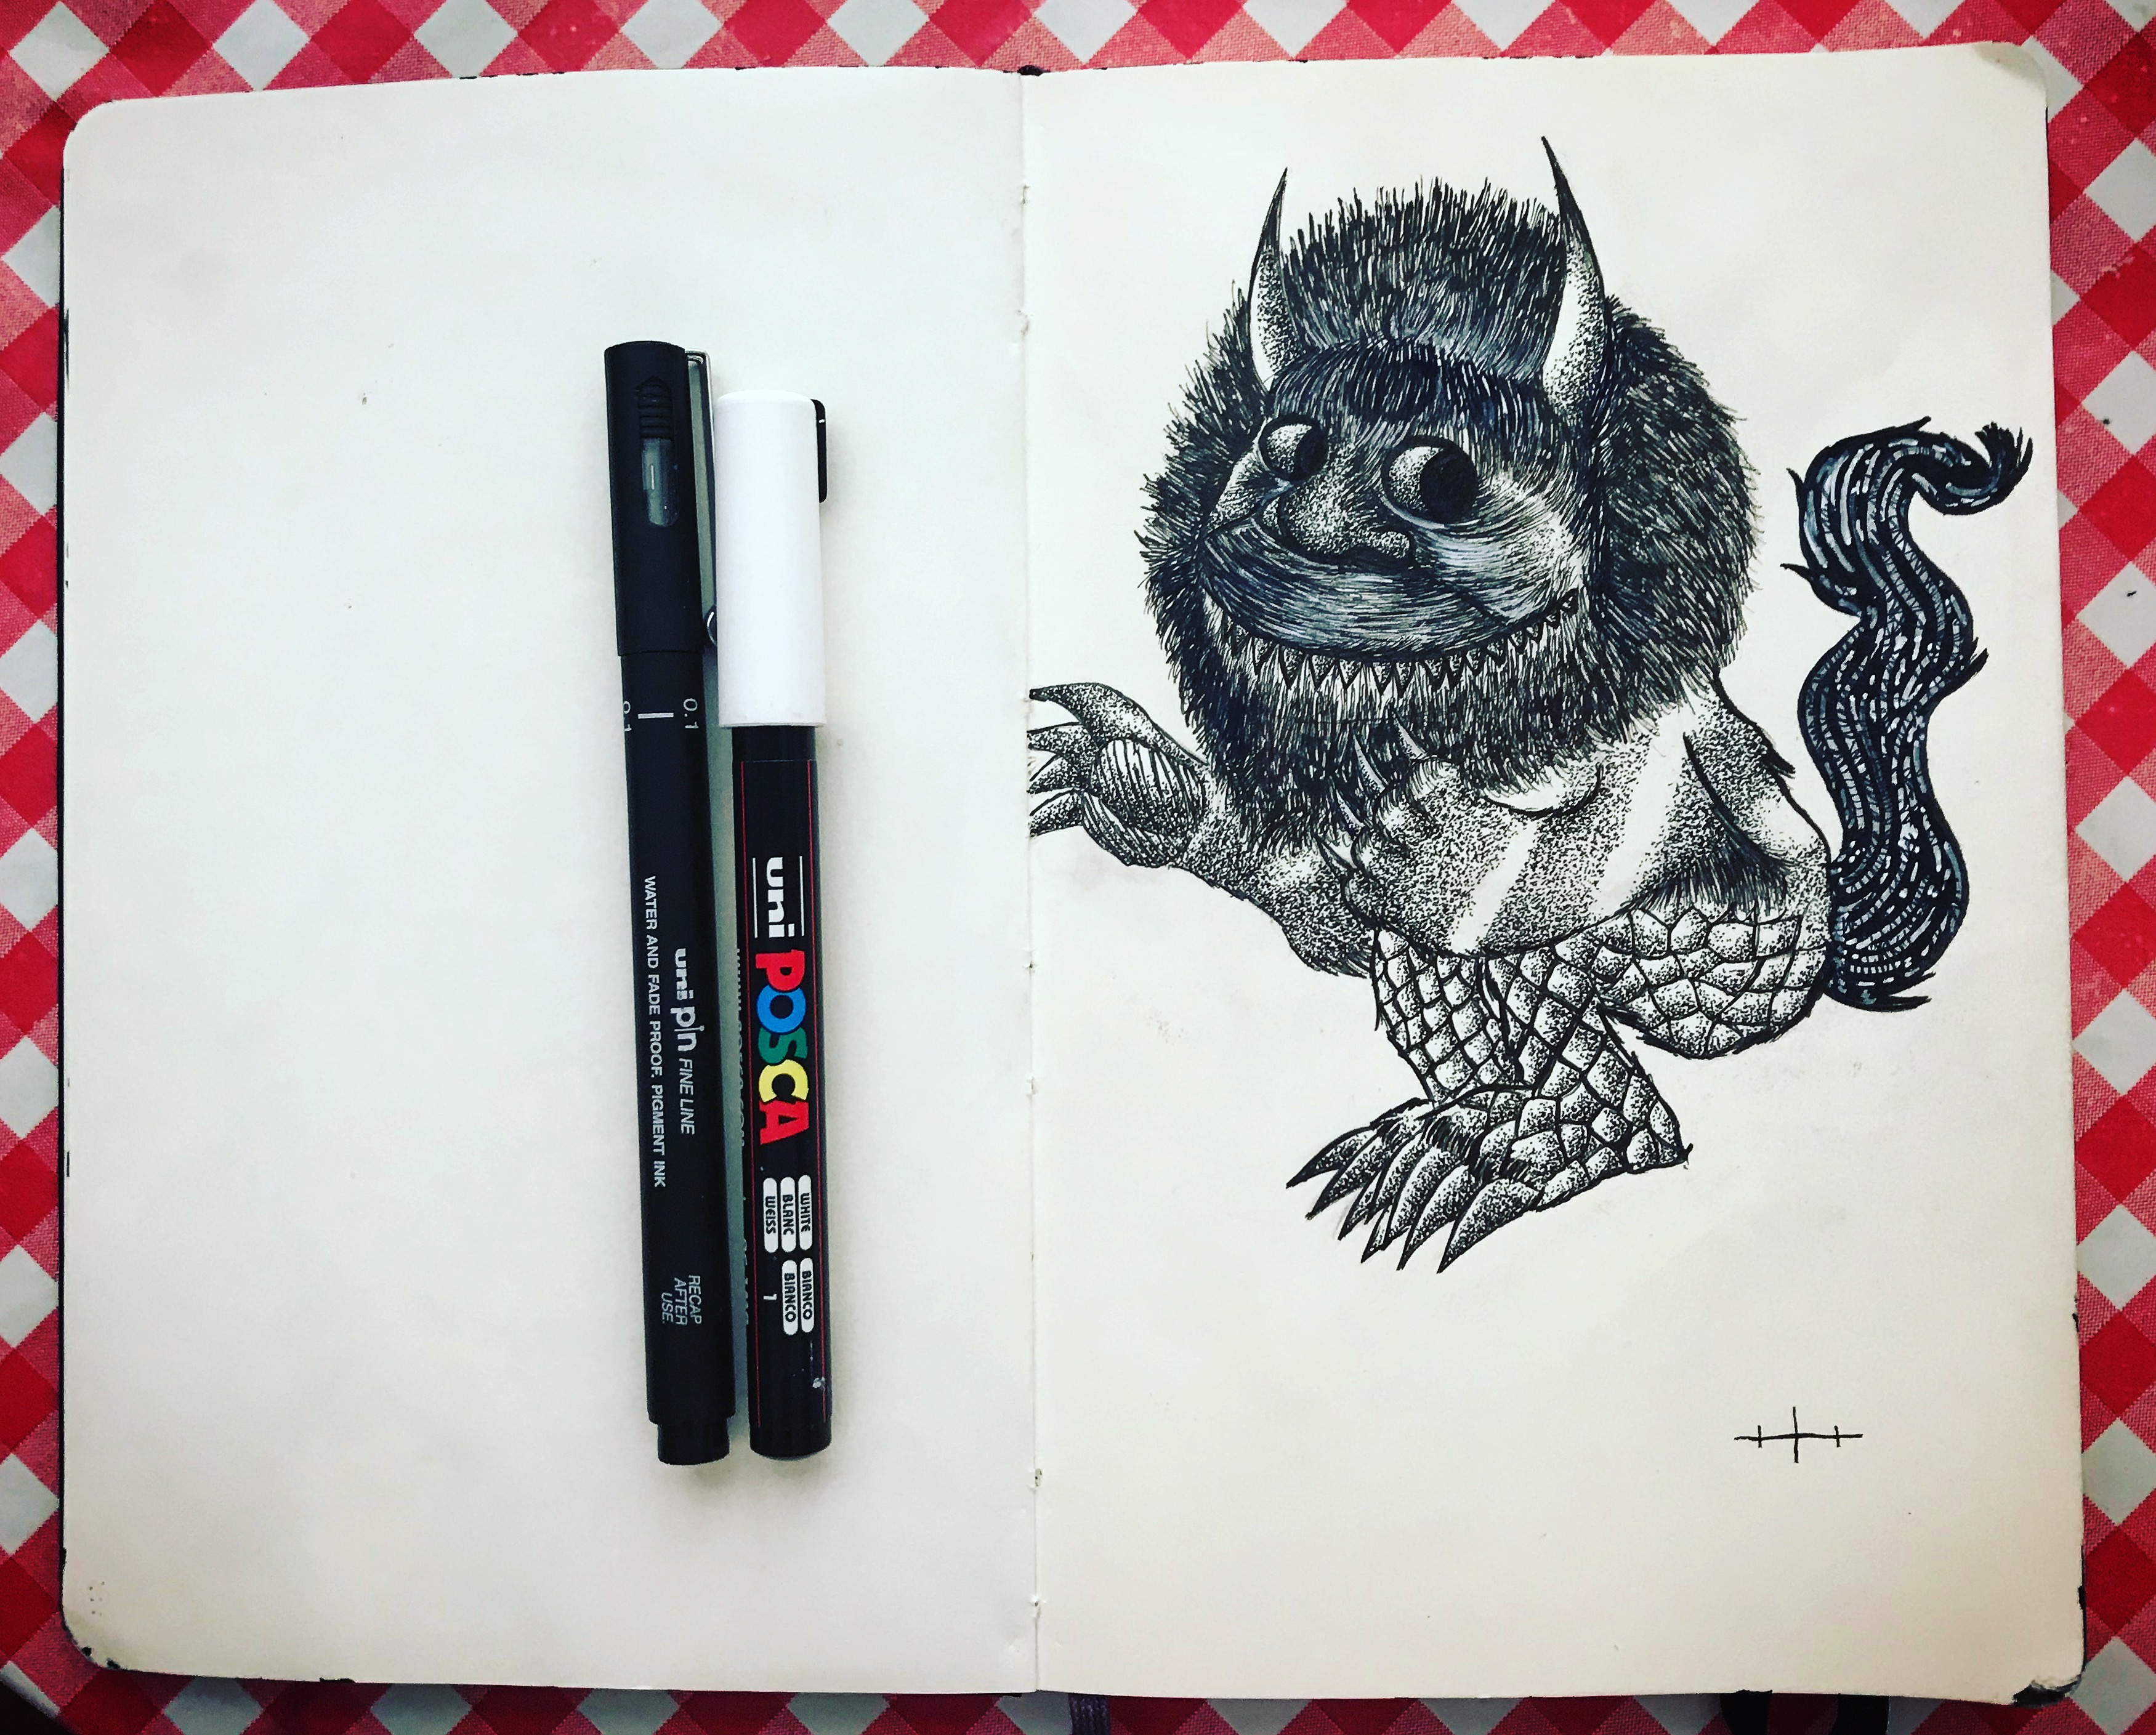 +++ WHERE THE WILD THINGS ARE +++